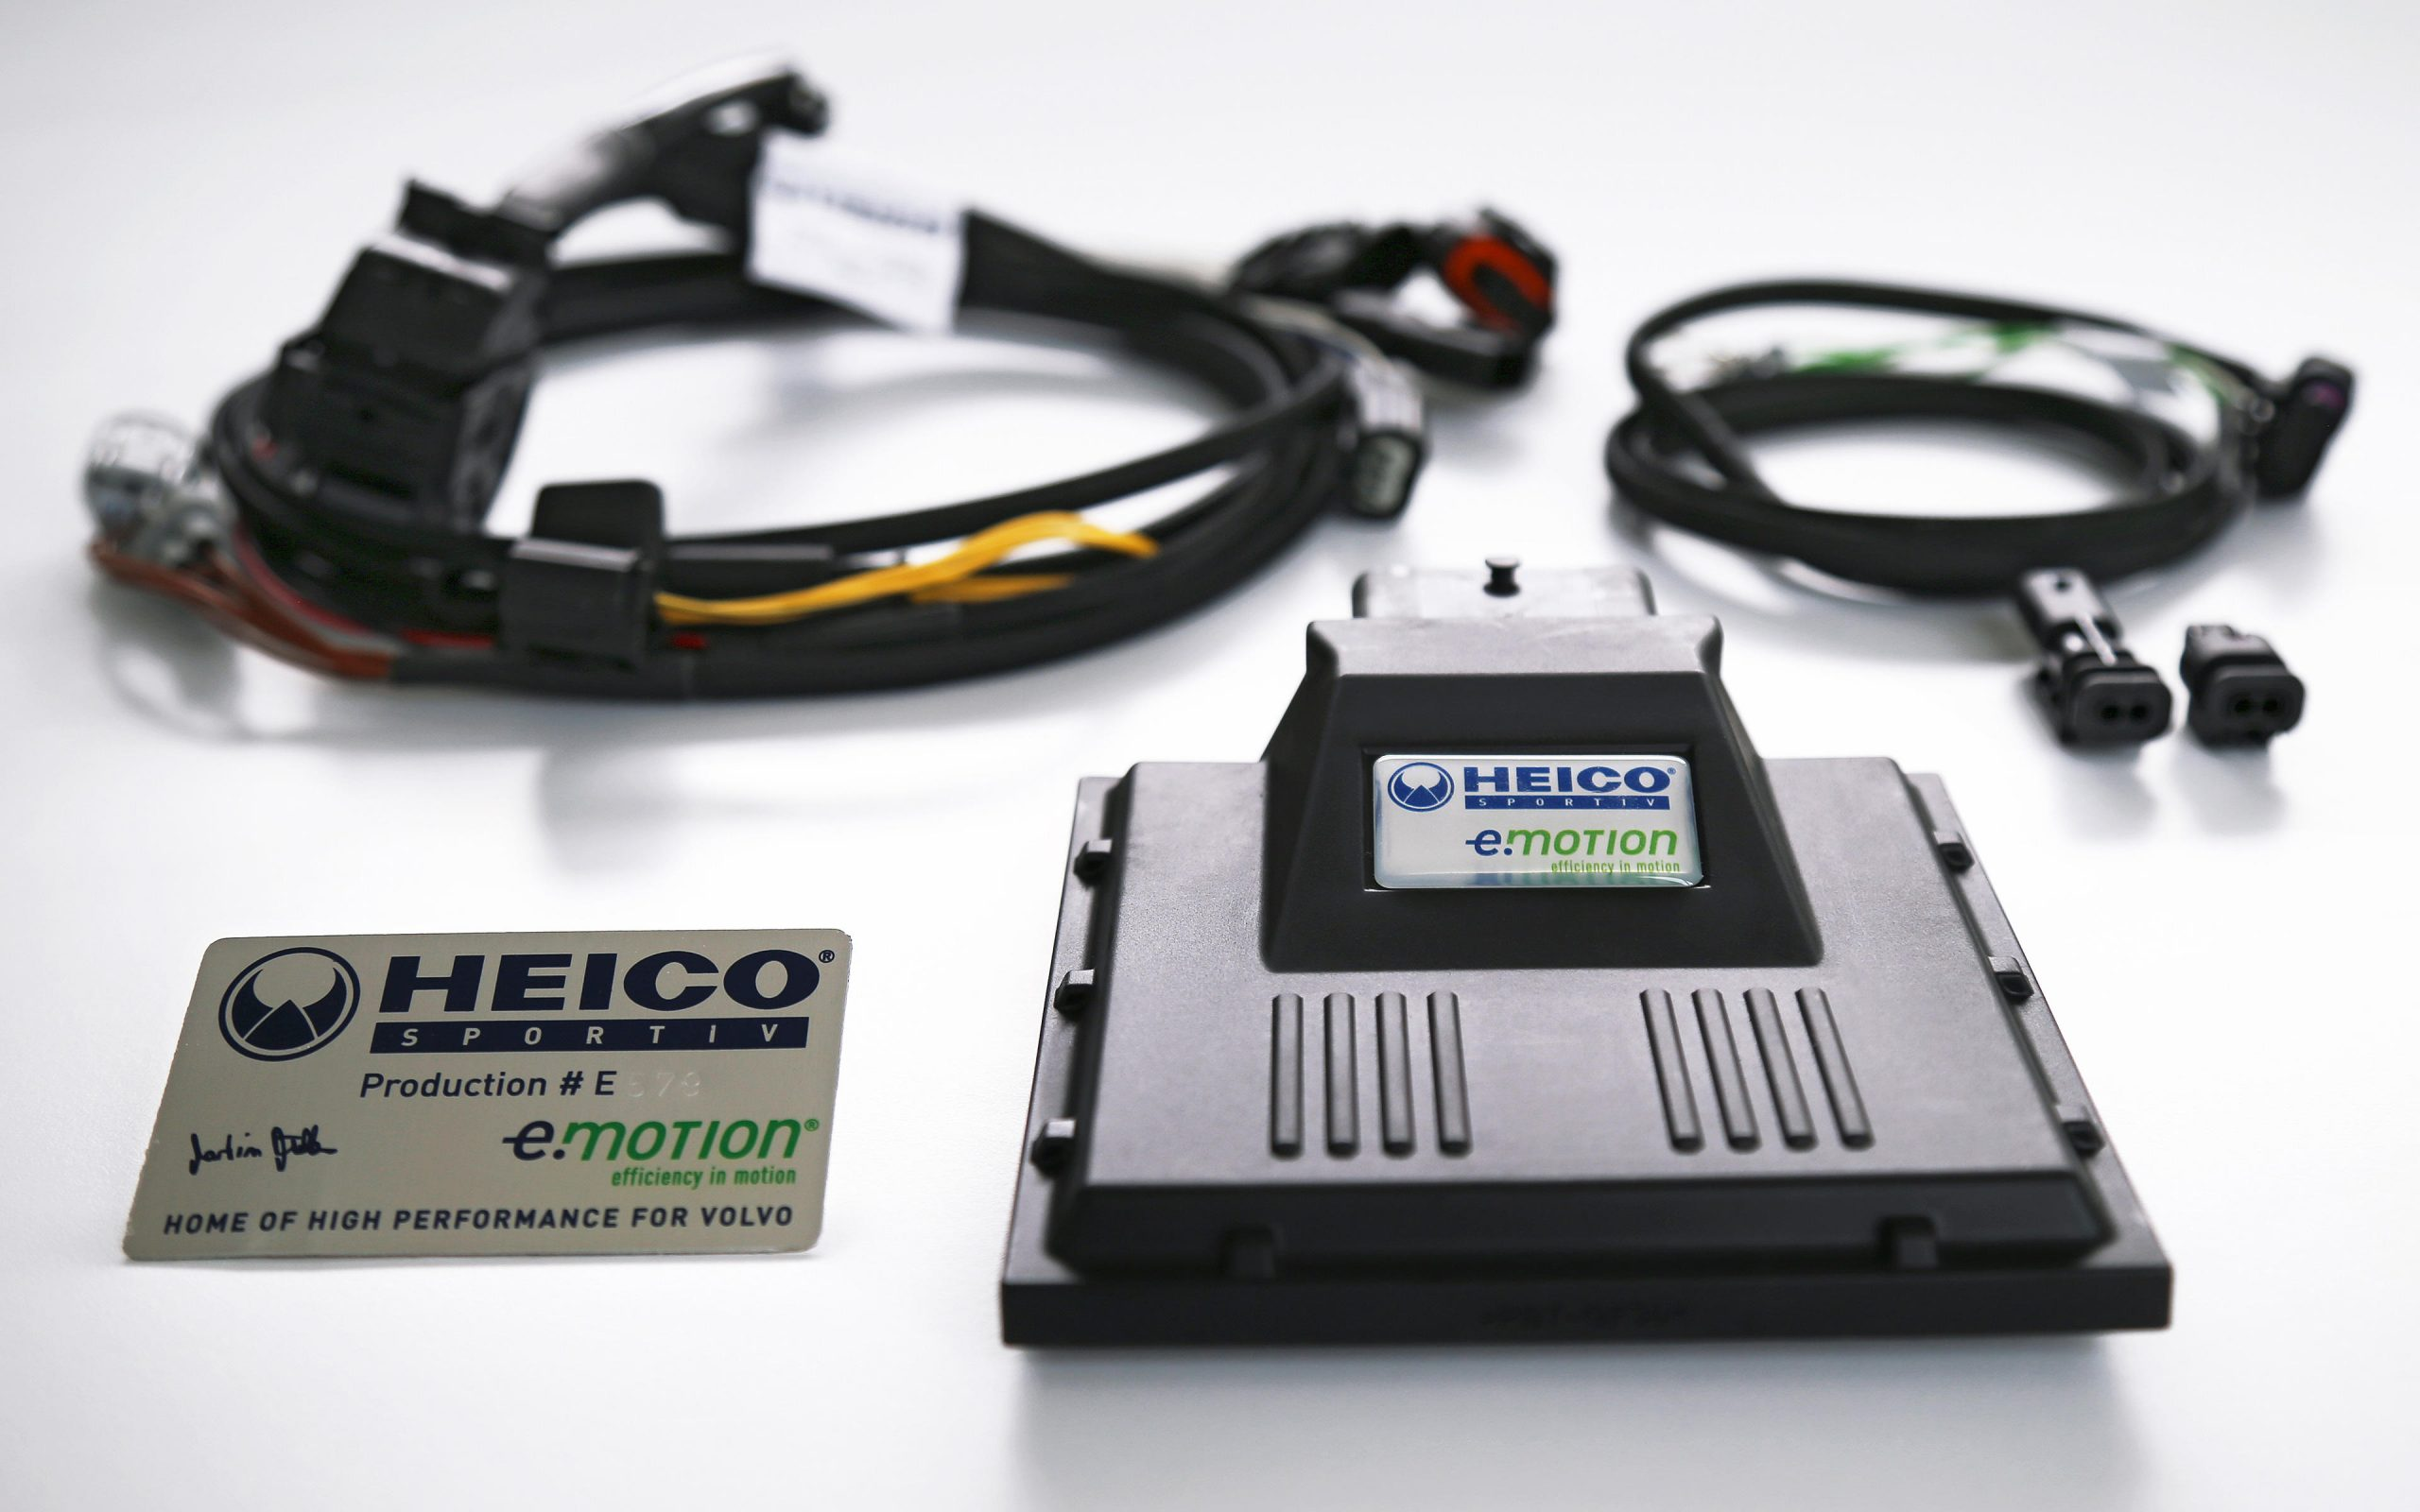 heico-sportiv-emotion-power-upgrade-2